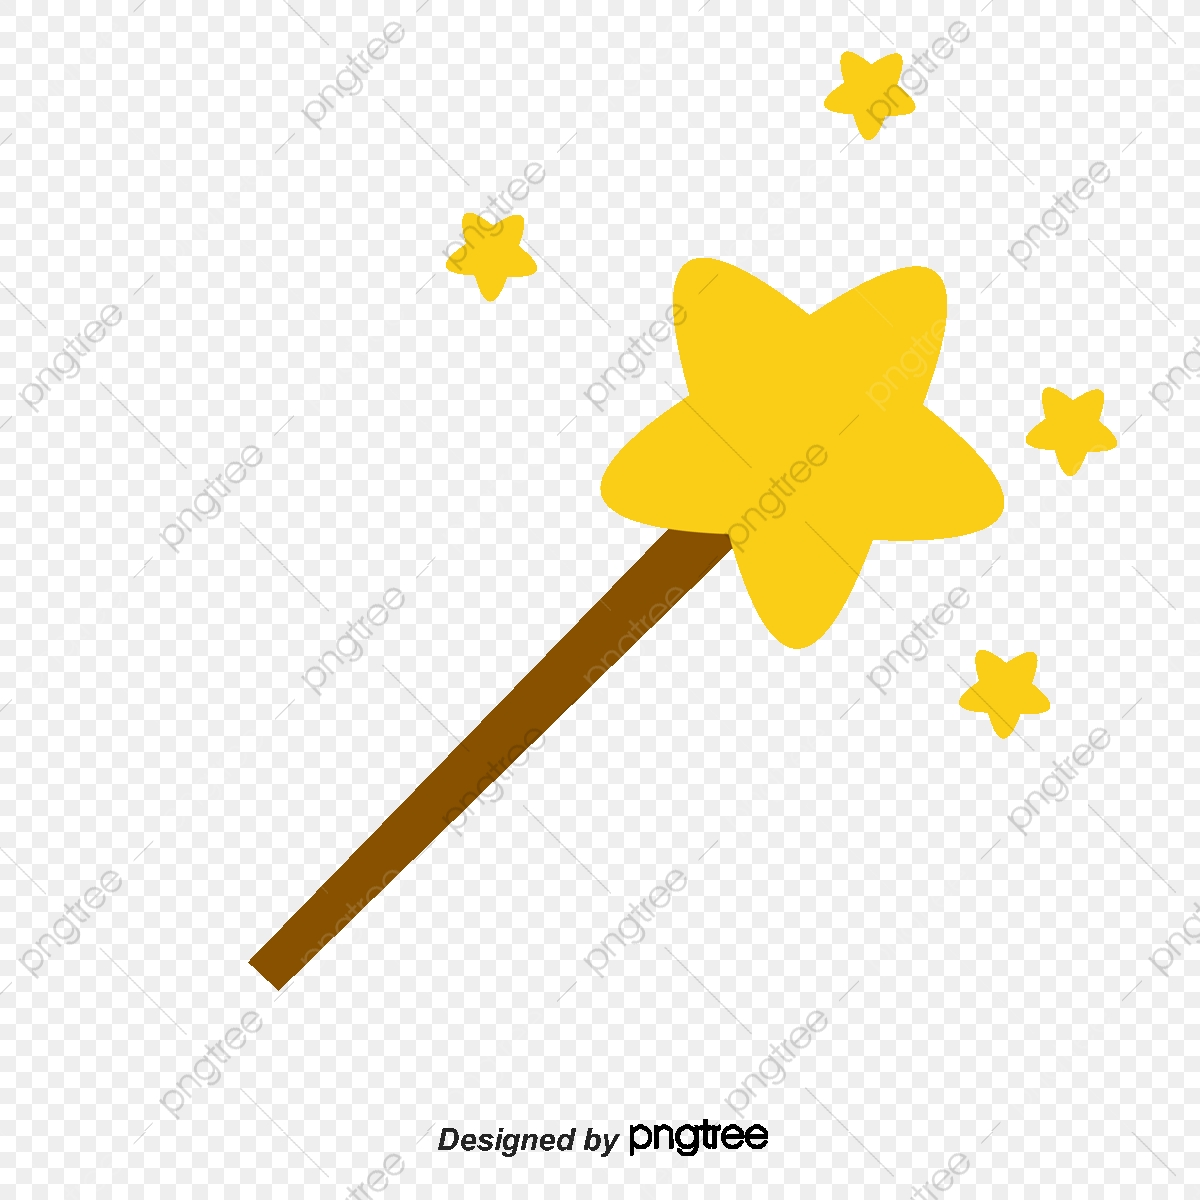 Magic Wand, Cartoon, Star PNG Transparent Clipart Image and PSD File.